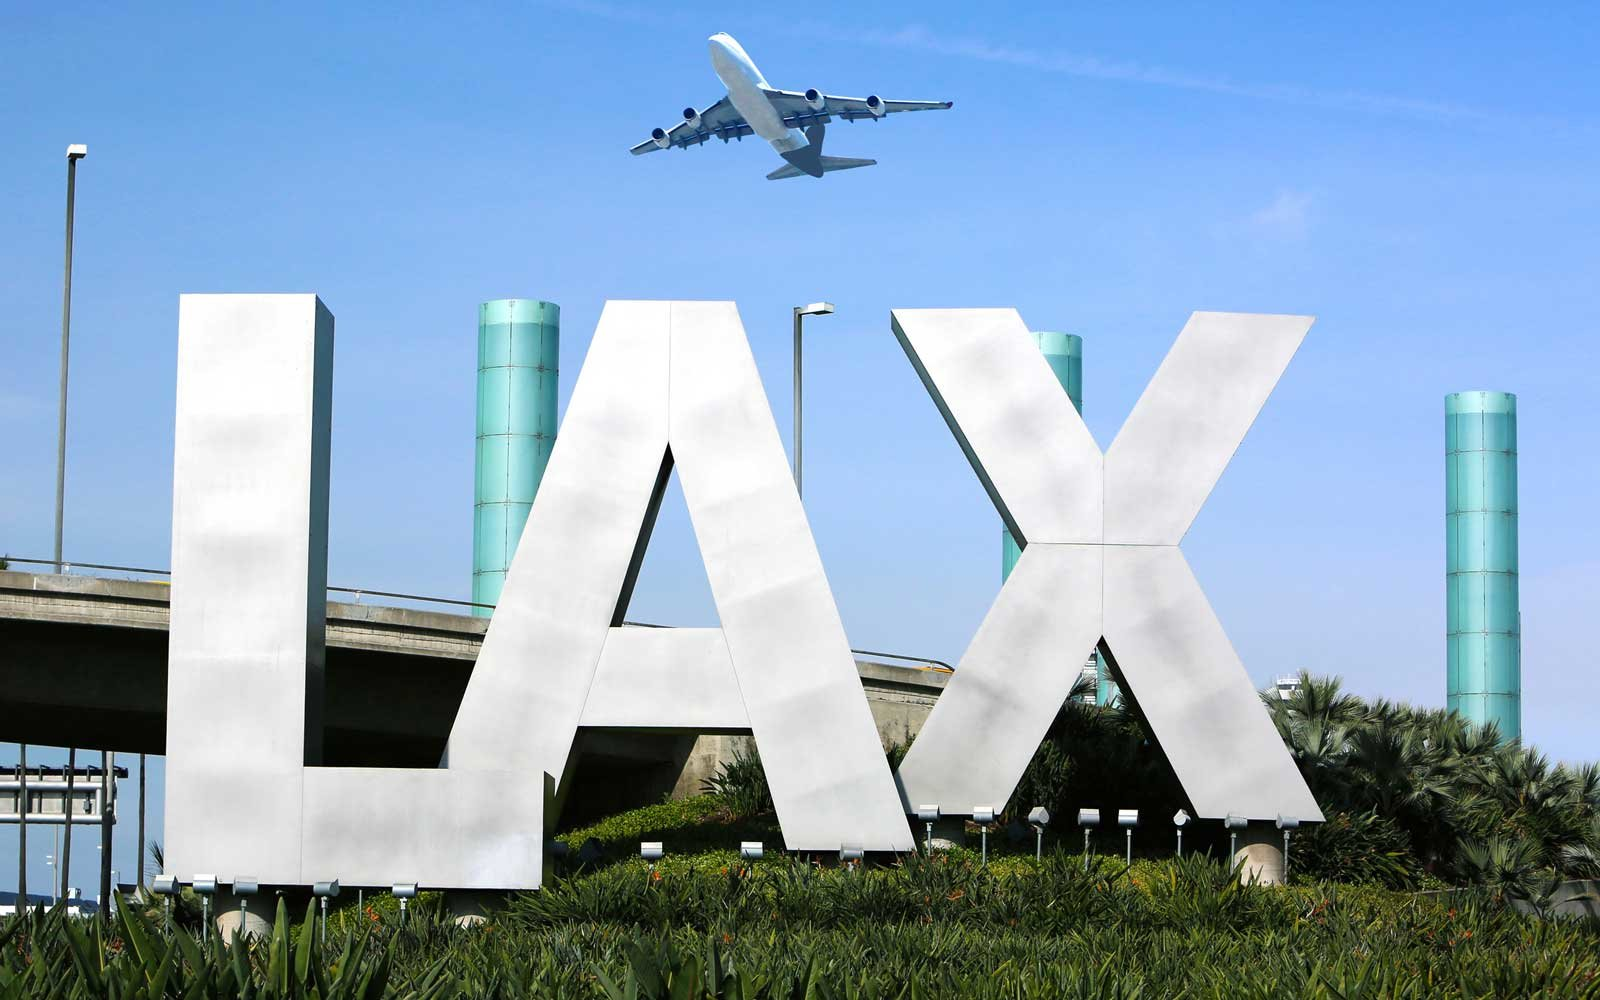 You can fly out of LAX with marijuana...kind of